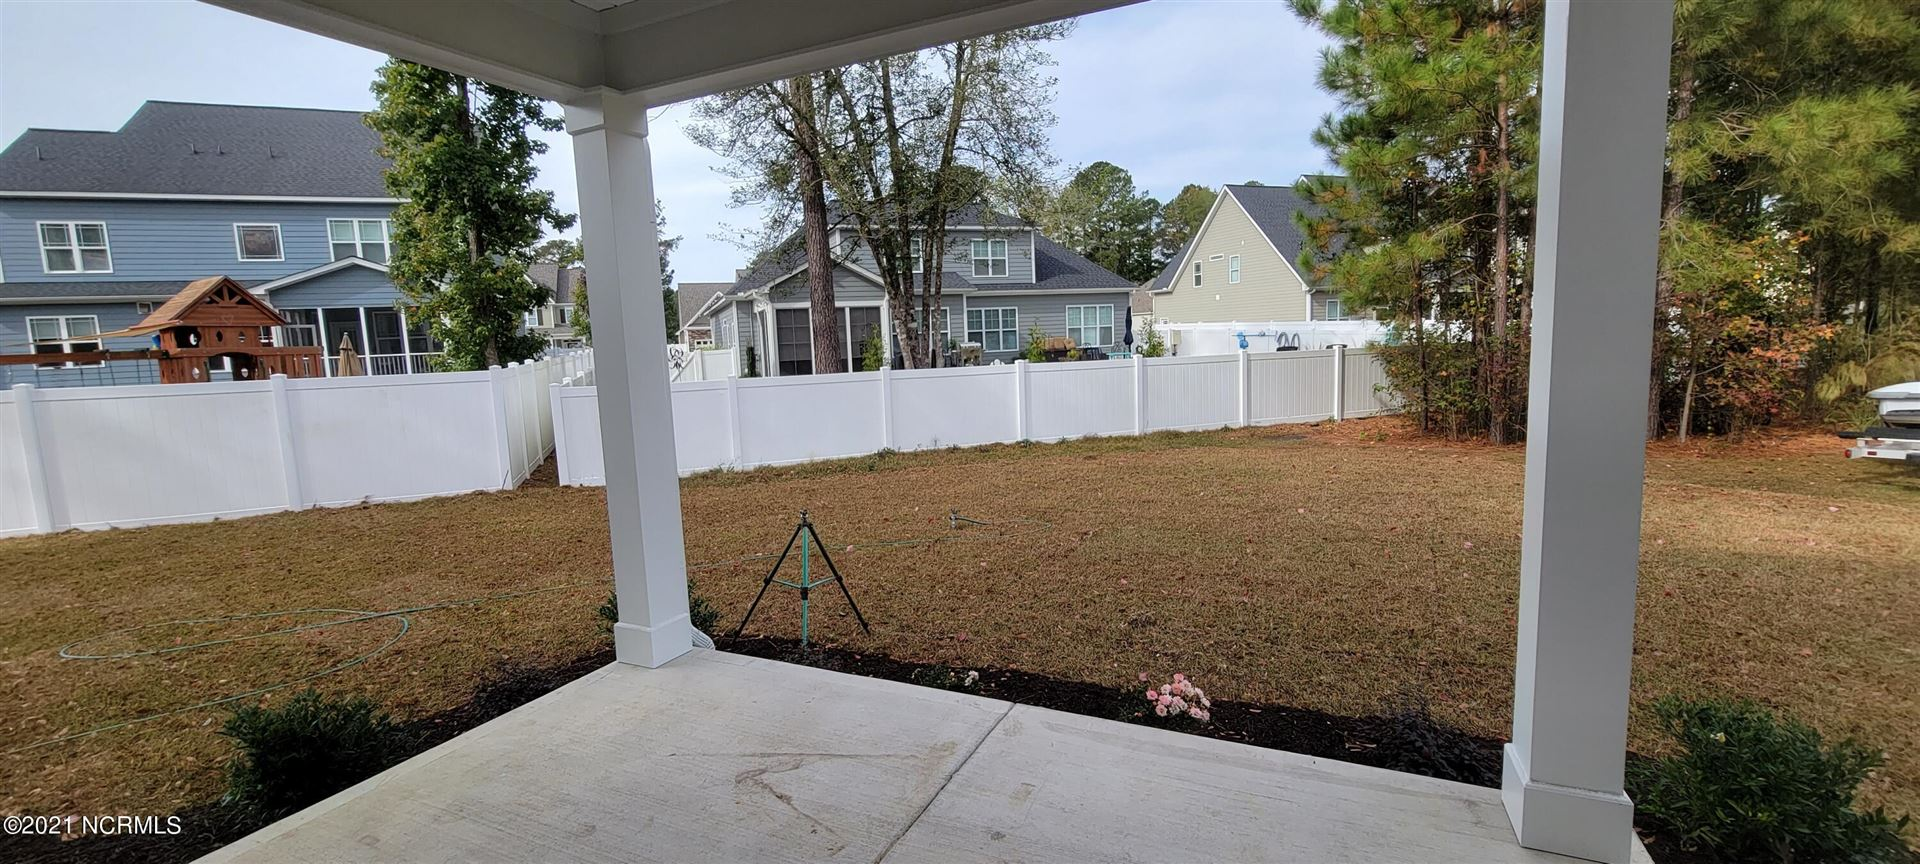 Photo of 3913 Colony Woods Drive, Greenville, NC 27834 (MLS # 100292656)